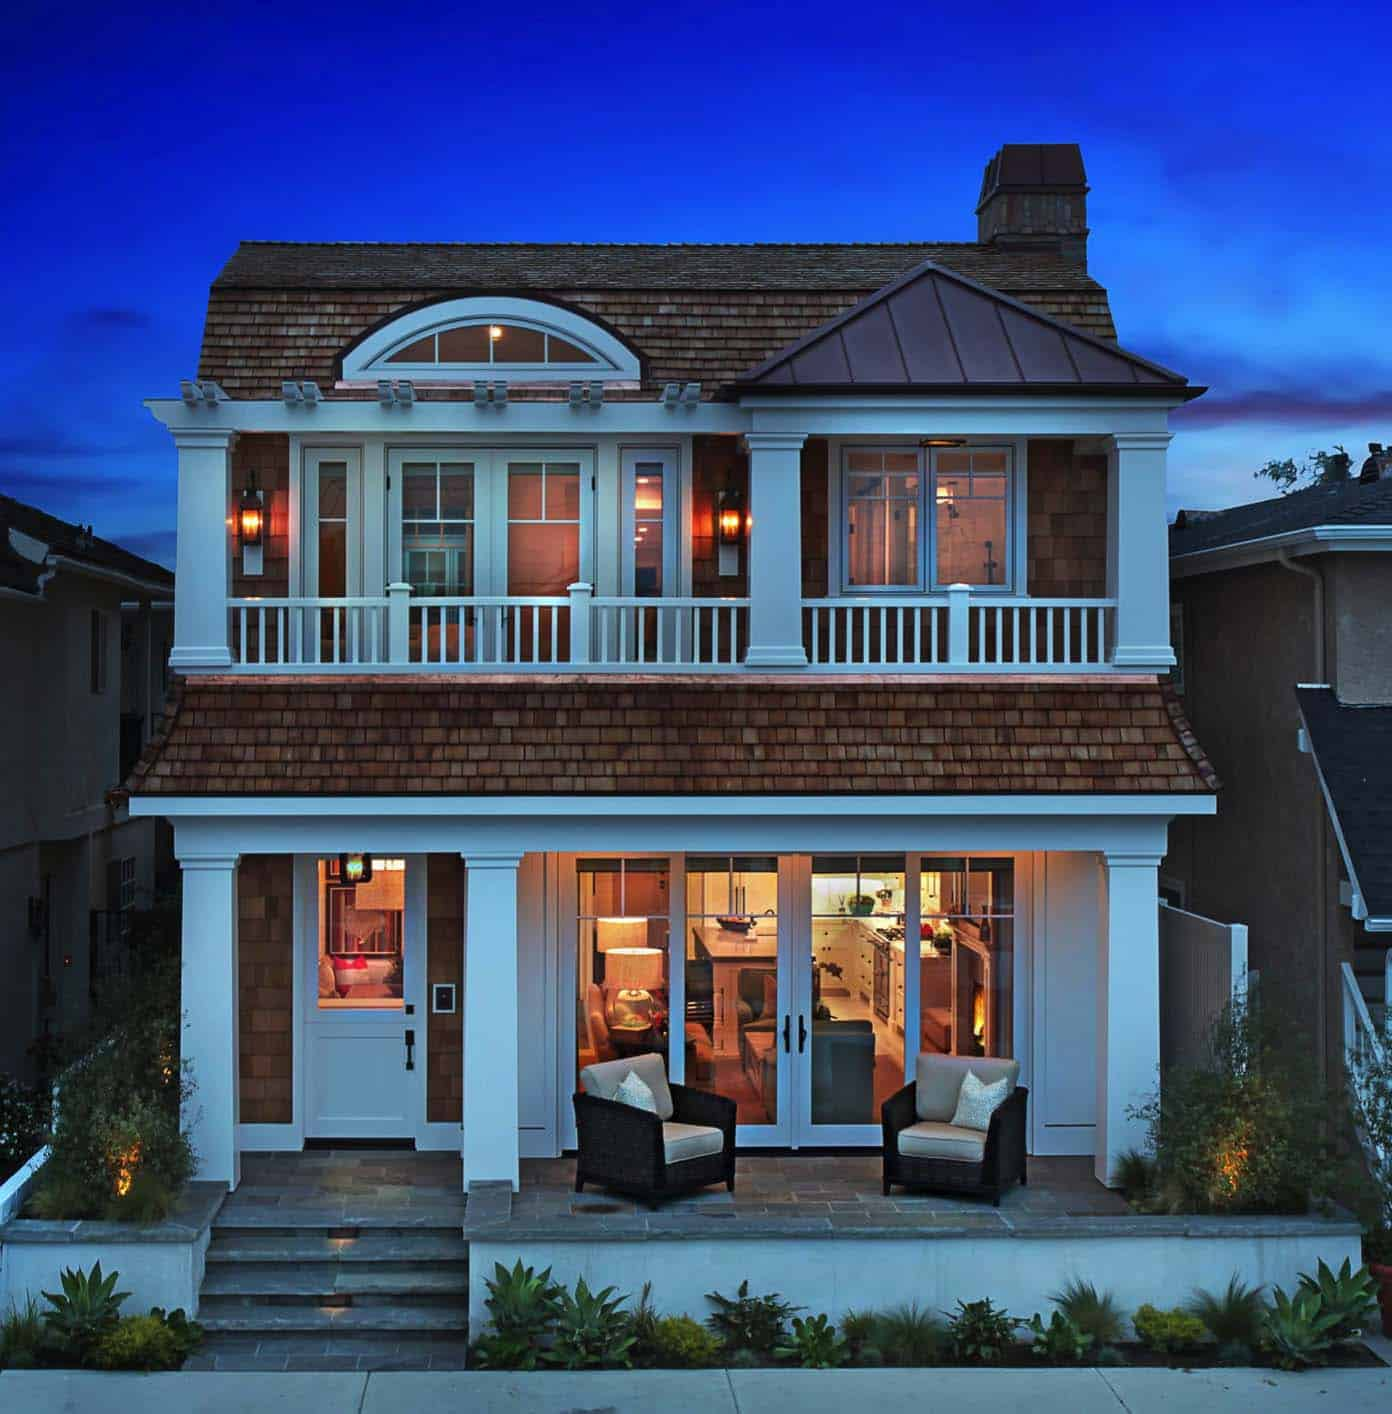 Beautifully designed Cape Cod inspired home on Balboa